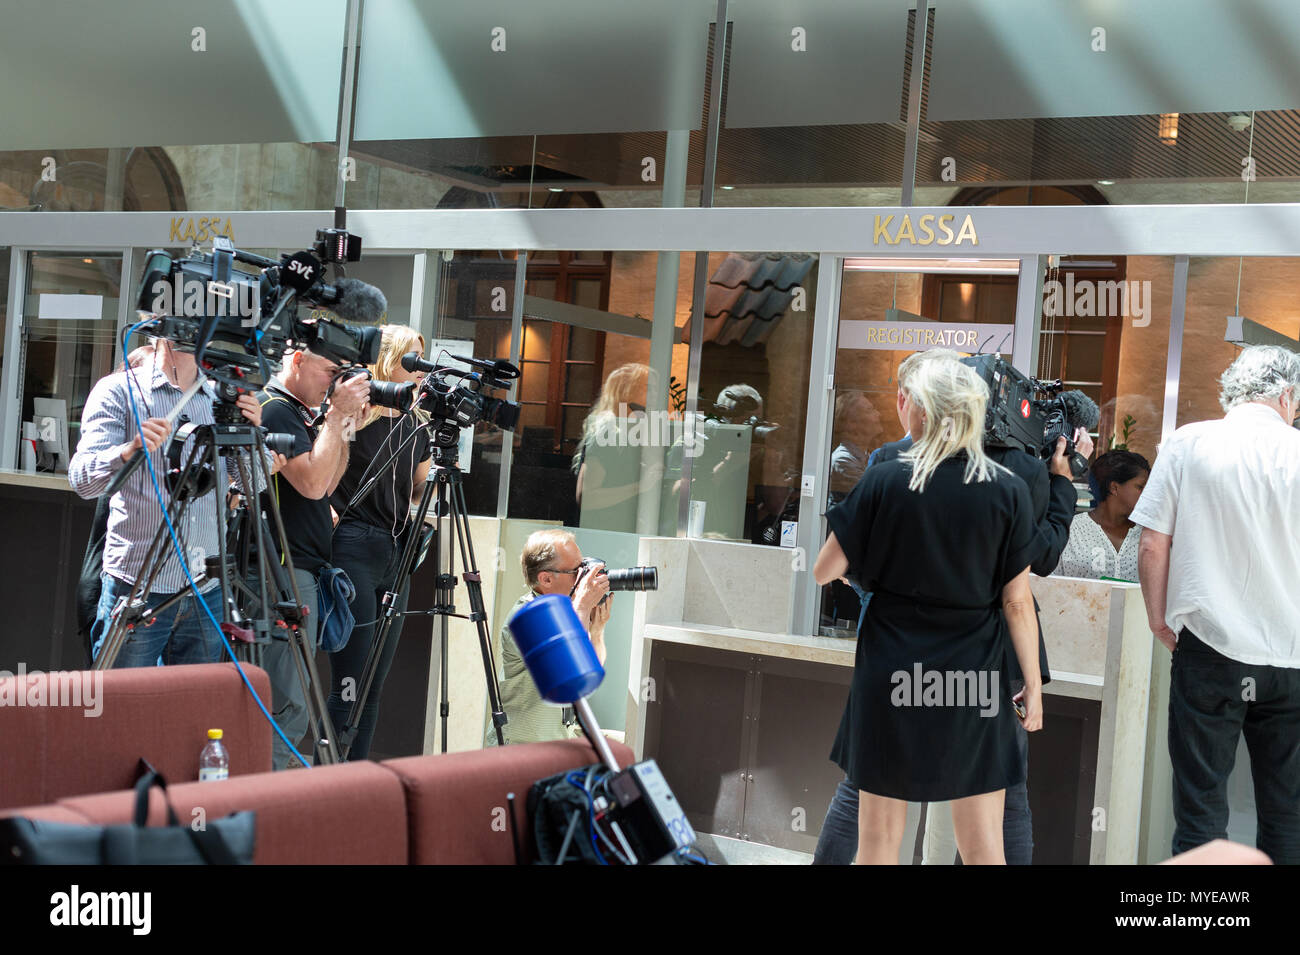 Stockholm, Sweden, June 7, 2018. Stockholm district court today sentenced Rakhmat Akilov to life imprisonment for terrorism attack on Drottninggatan, April 7, 2017. Akilov will be deported after having served his sentence. Journalists wating for the verdict. Credit: Barbro Bergfeldt/Alamy Live NewsStock Photo